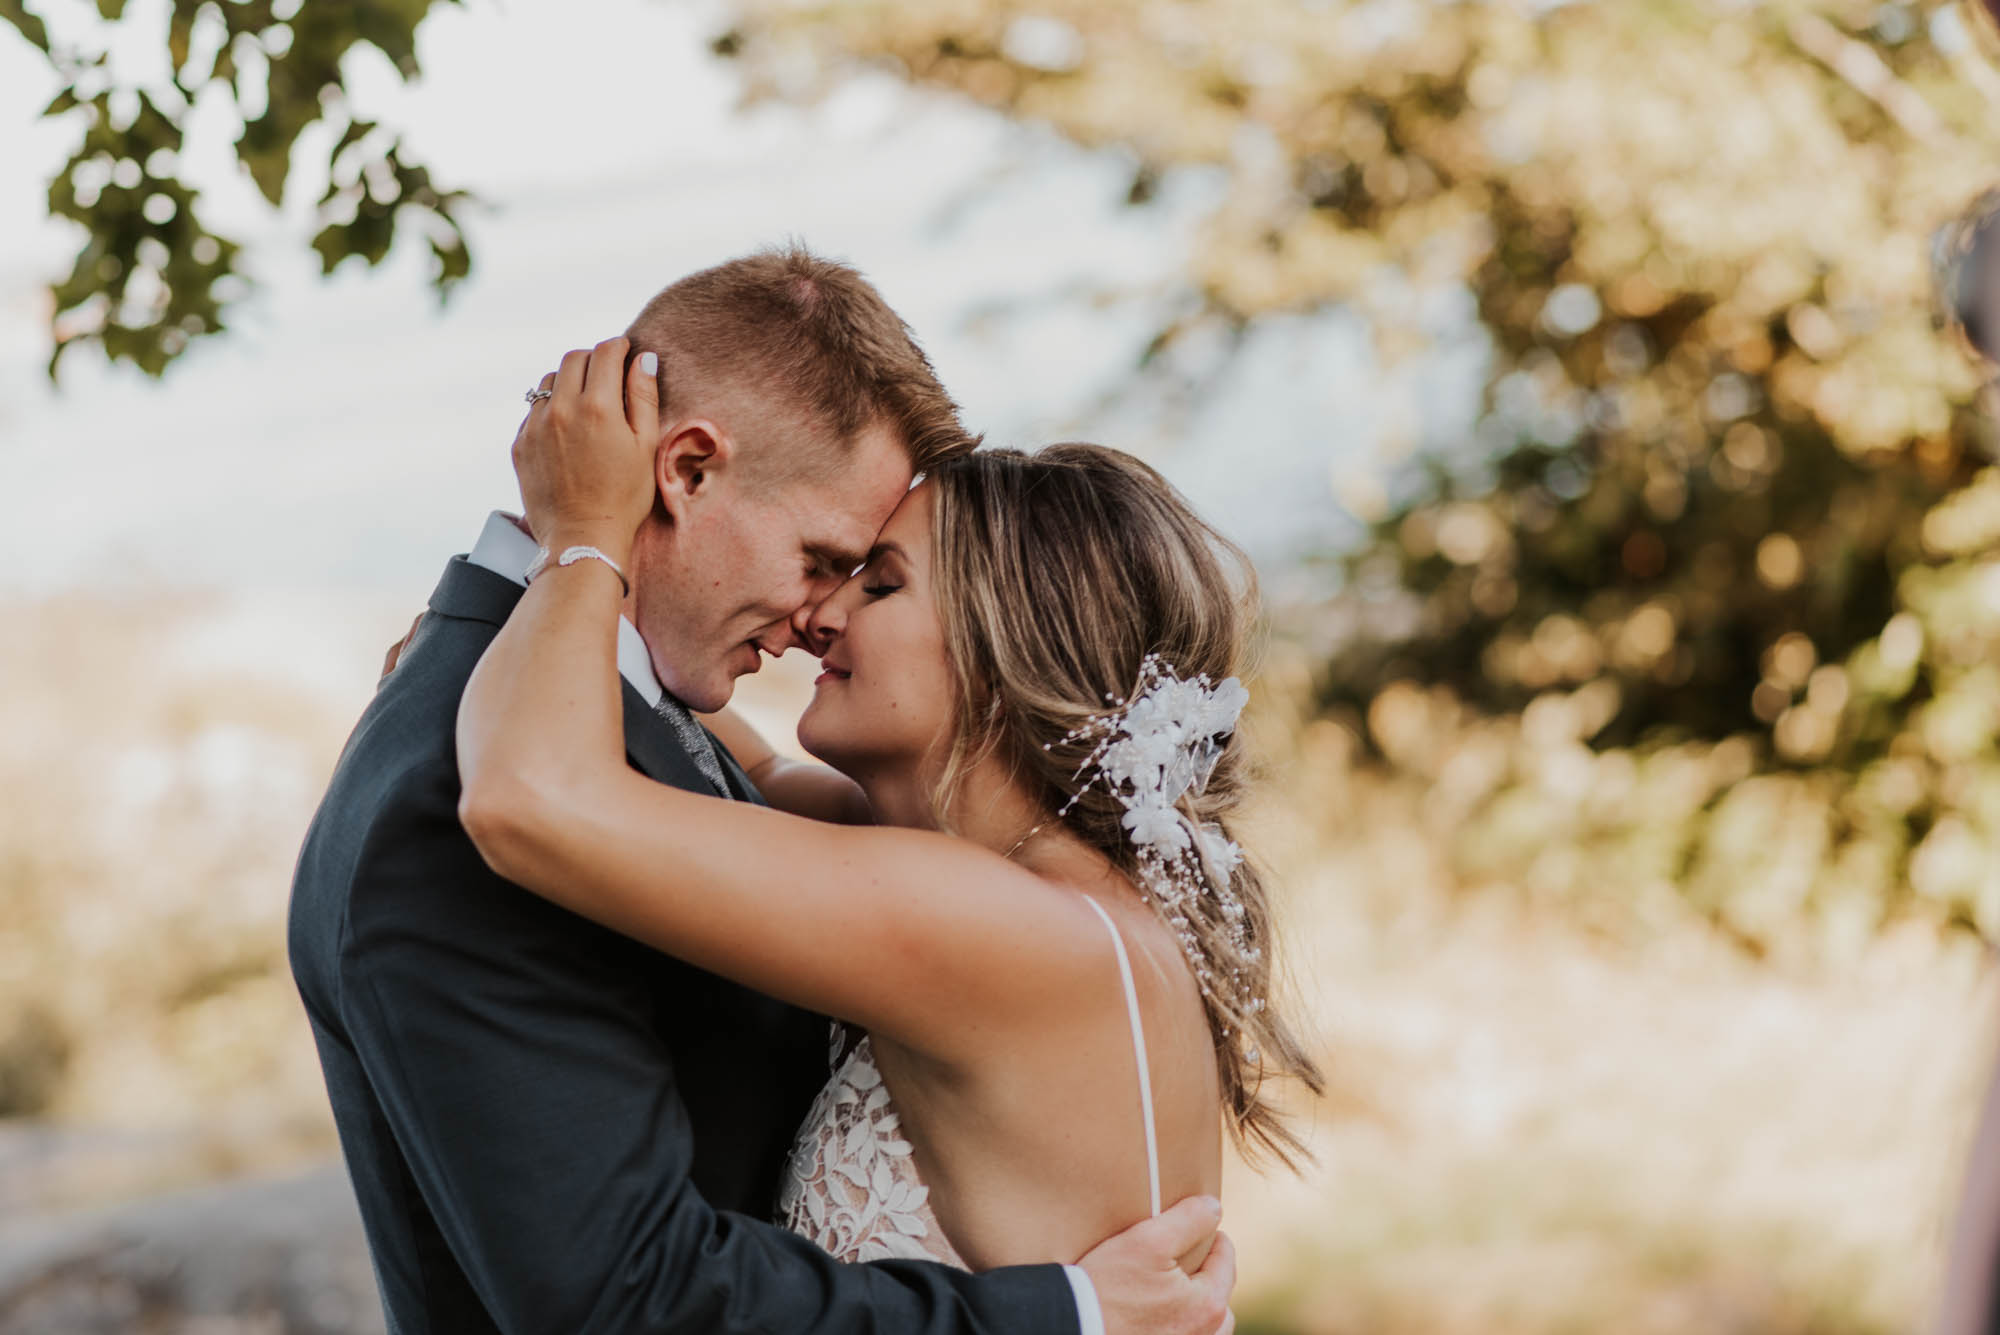 Kate-Paterson-Photography-Fraser-Valley-BC-West-Caost-Elopement